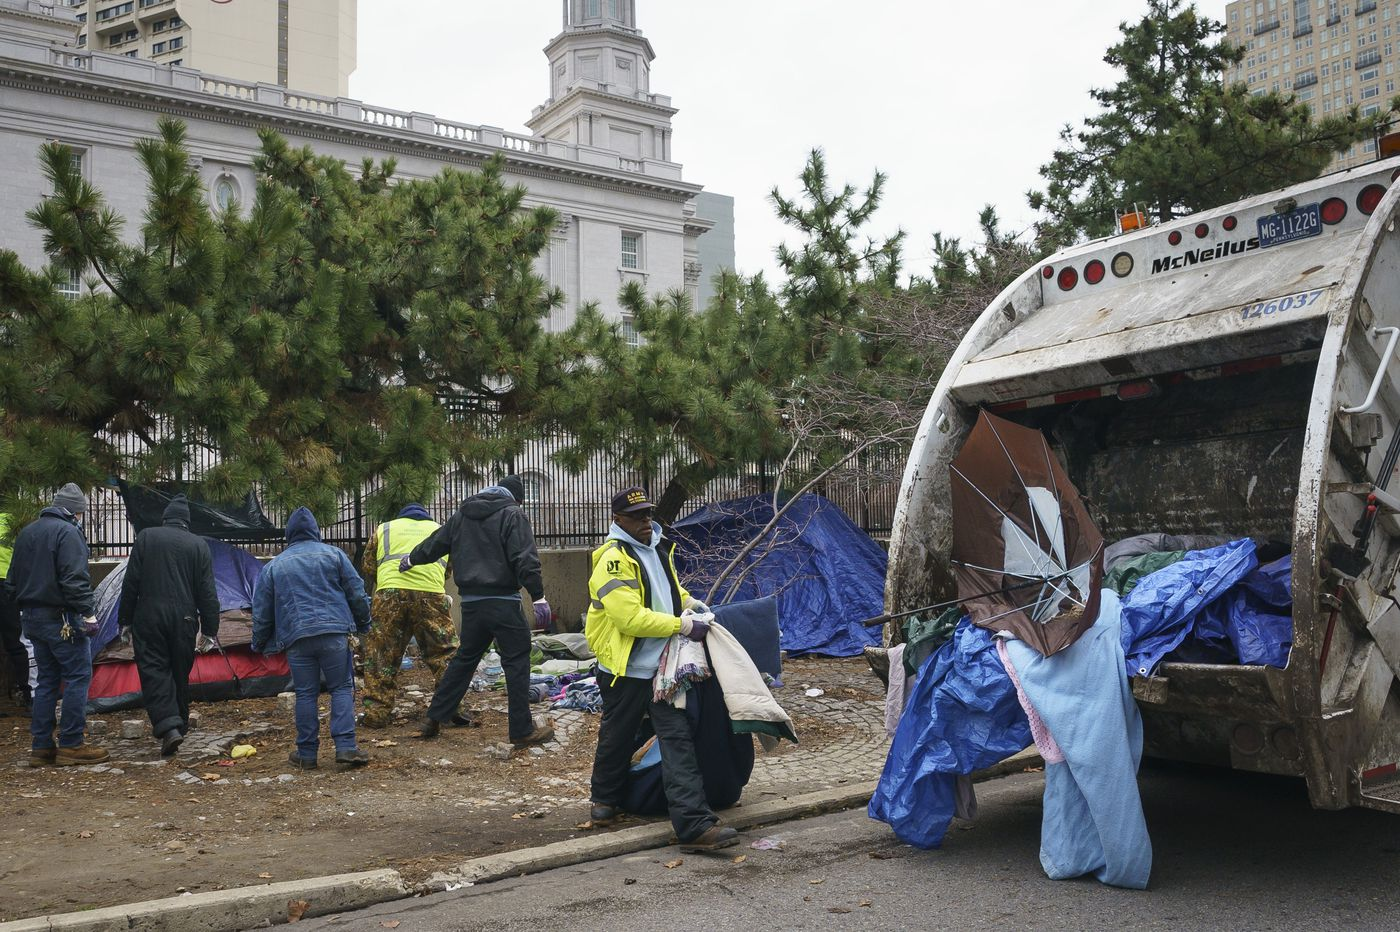 Homeless encampment at 18th & Vine Streets cleared